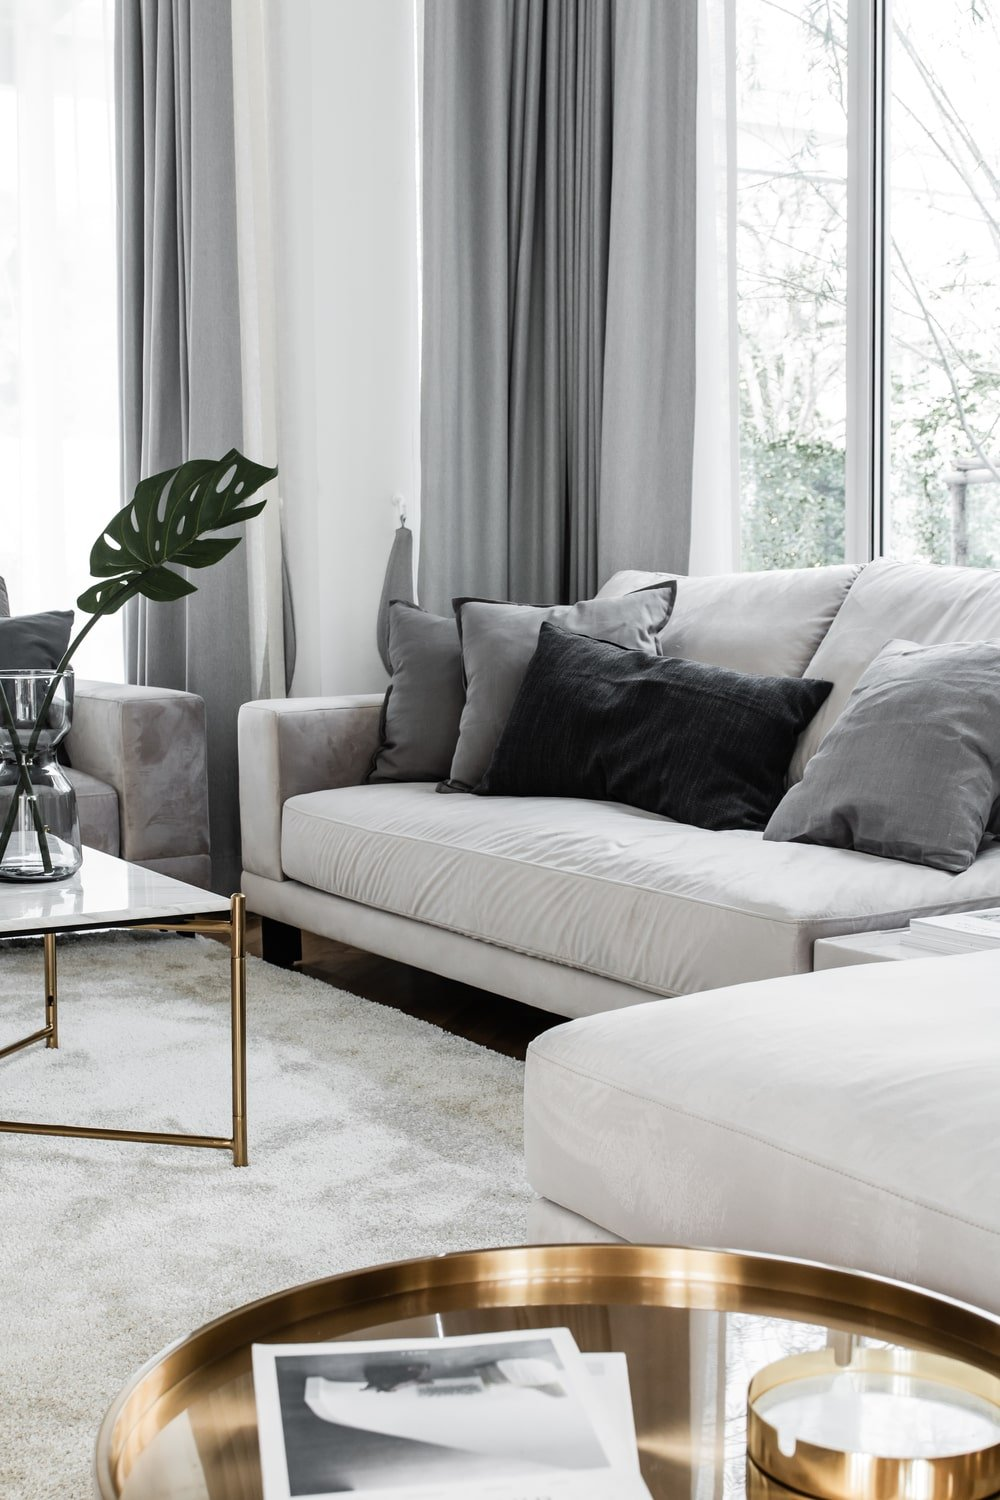 The light beige sofas are adorned with dark gray and gray throw pillows that bring contrast to the sofa.